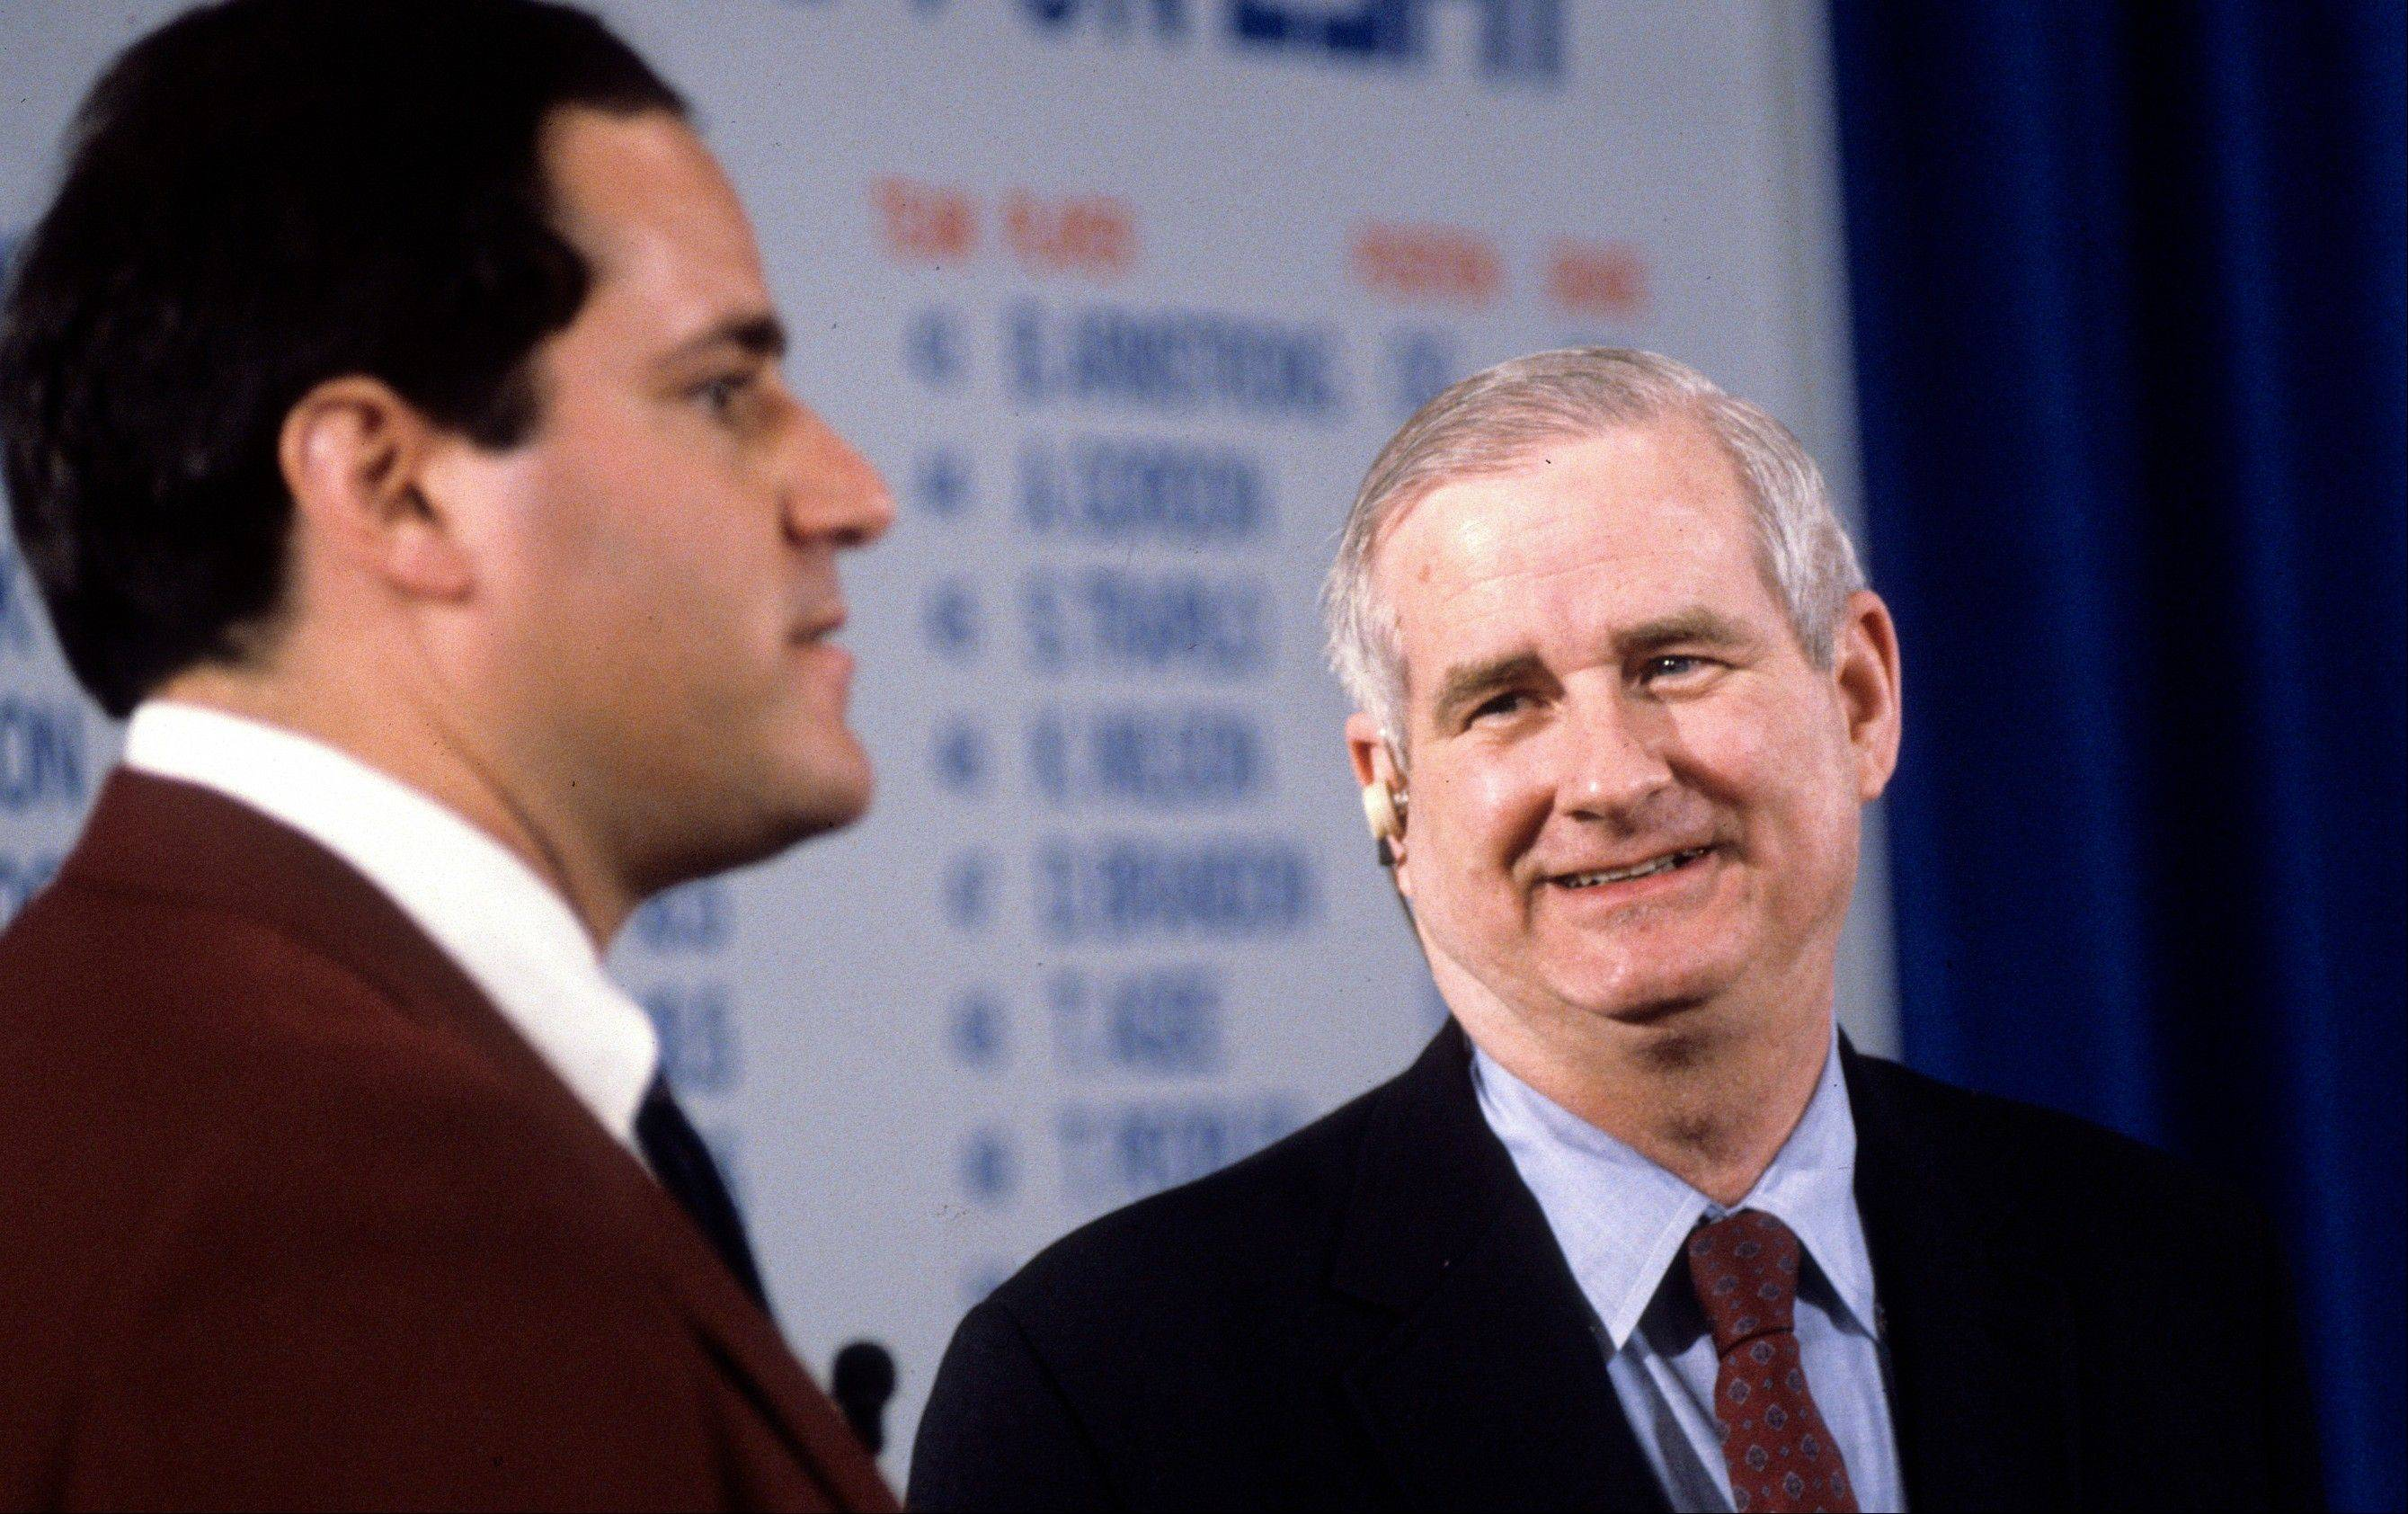 "ESPN host Chris Berman, left, and college football commentator Carroll ""Beano"" Cook are shown discussing the NFL Draft. Cook died in his sleep Thursday, the University of Pittsburgh announced. The 81 year-old commentator had worked for the sports network since 1986 and was the sports information director at his alma mater, the University of Pittsburgh, from 1956 to 1966."